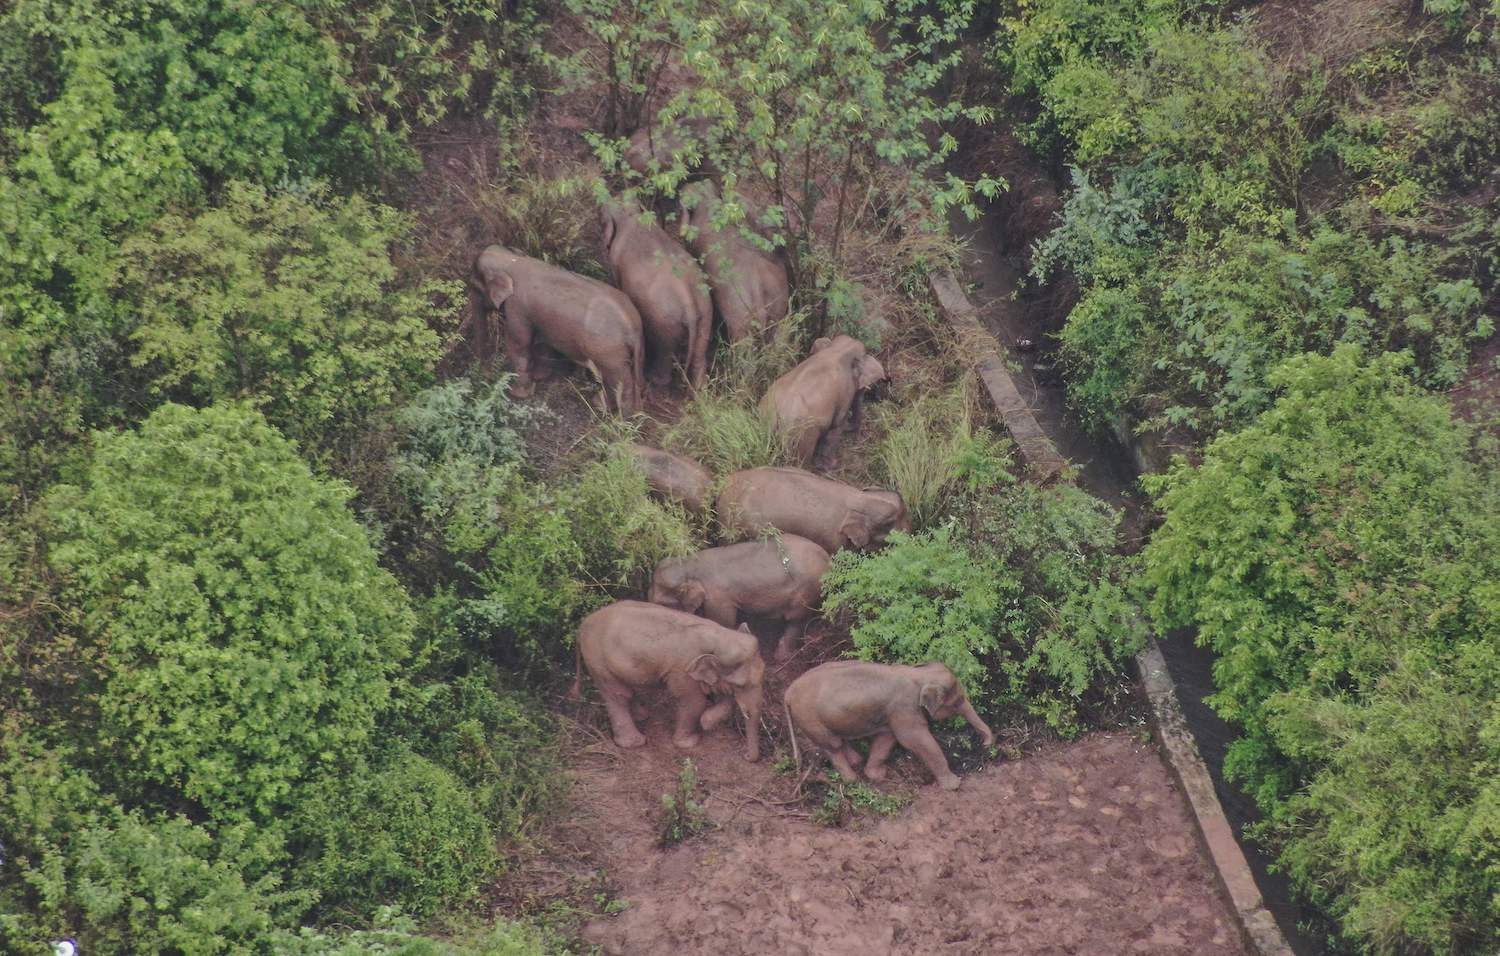 A photo released on Friday by Yunnan authorities shows part of a herd that has wandered 500 kilometres north from their natural habitat, foraging in a forest in Yimen county in the southwestern Chinese province of Yunnan. (Handout Photo from Yunnan Provincial Command of the Safety Precautions of the Migrating Asian Elephant via AFP)